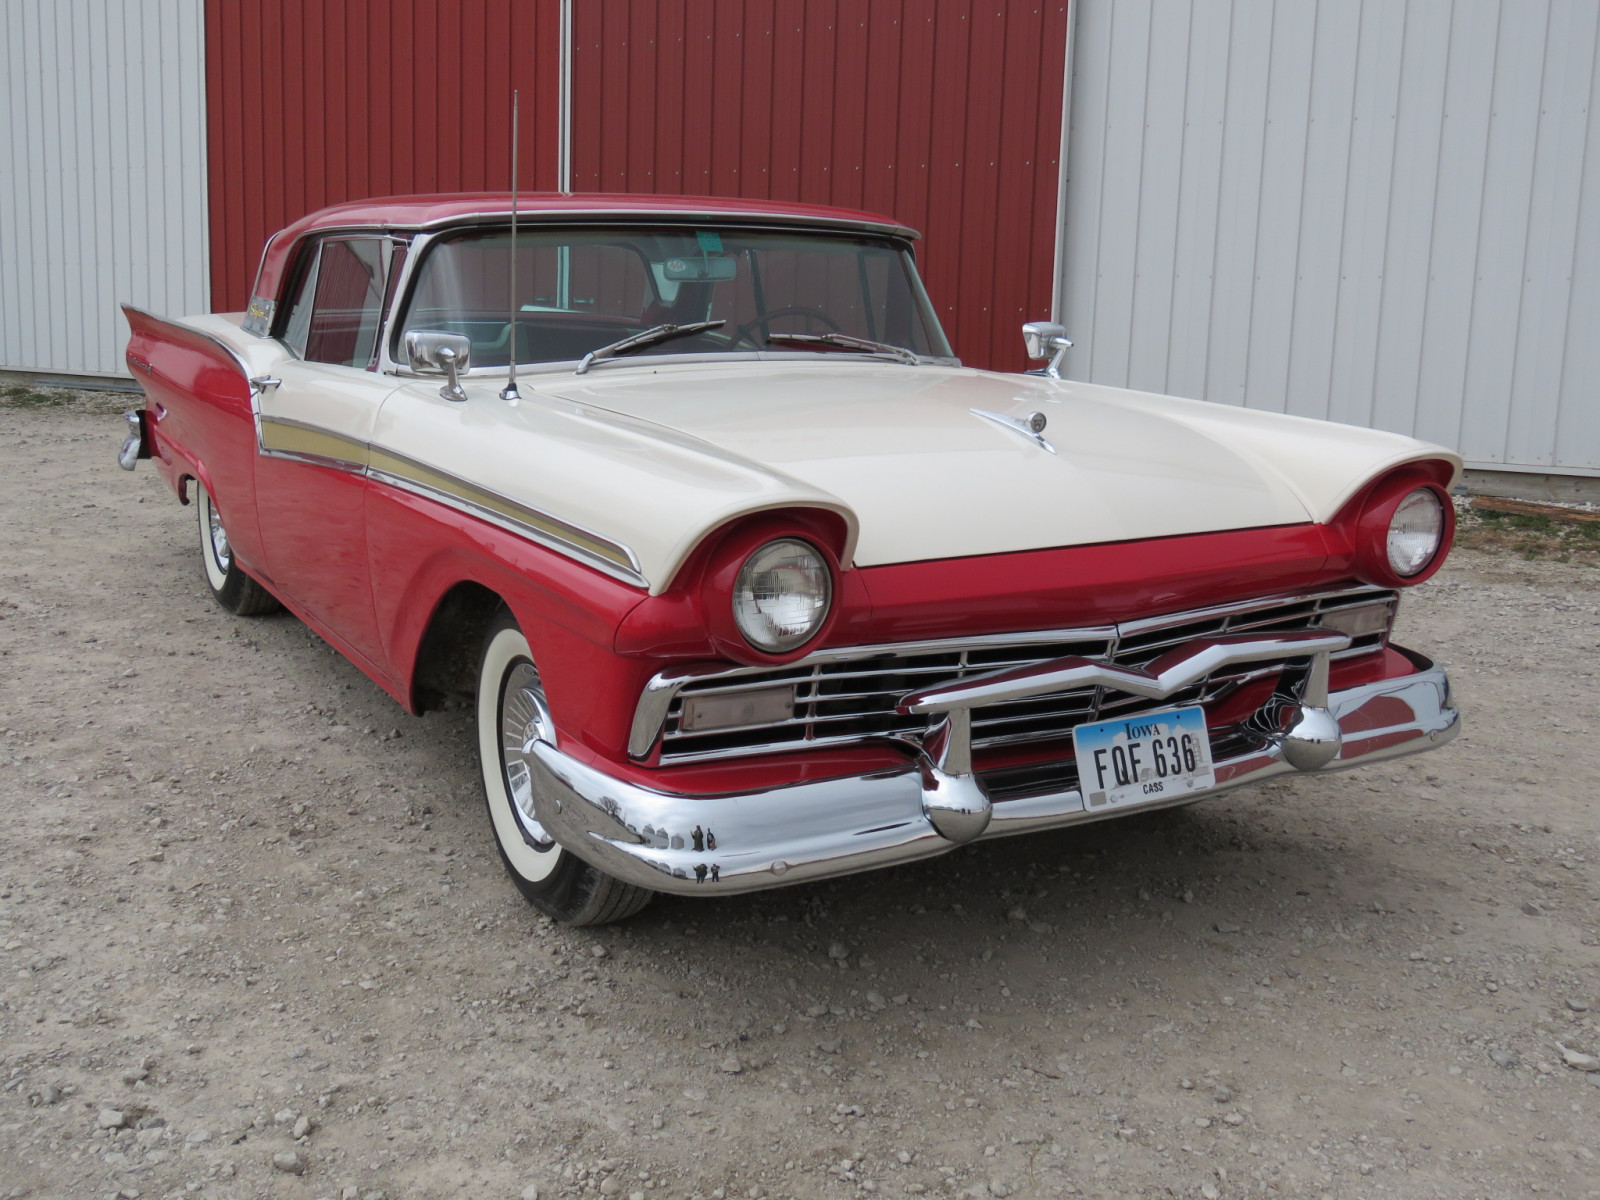 1957 Ford Fairlane 500 Skyliner Retractable hard Top - Image 1